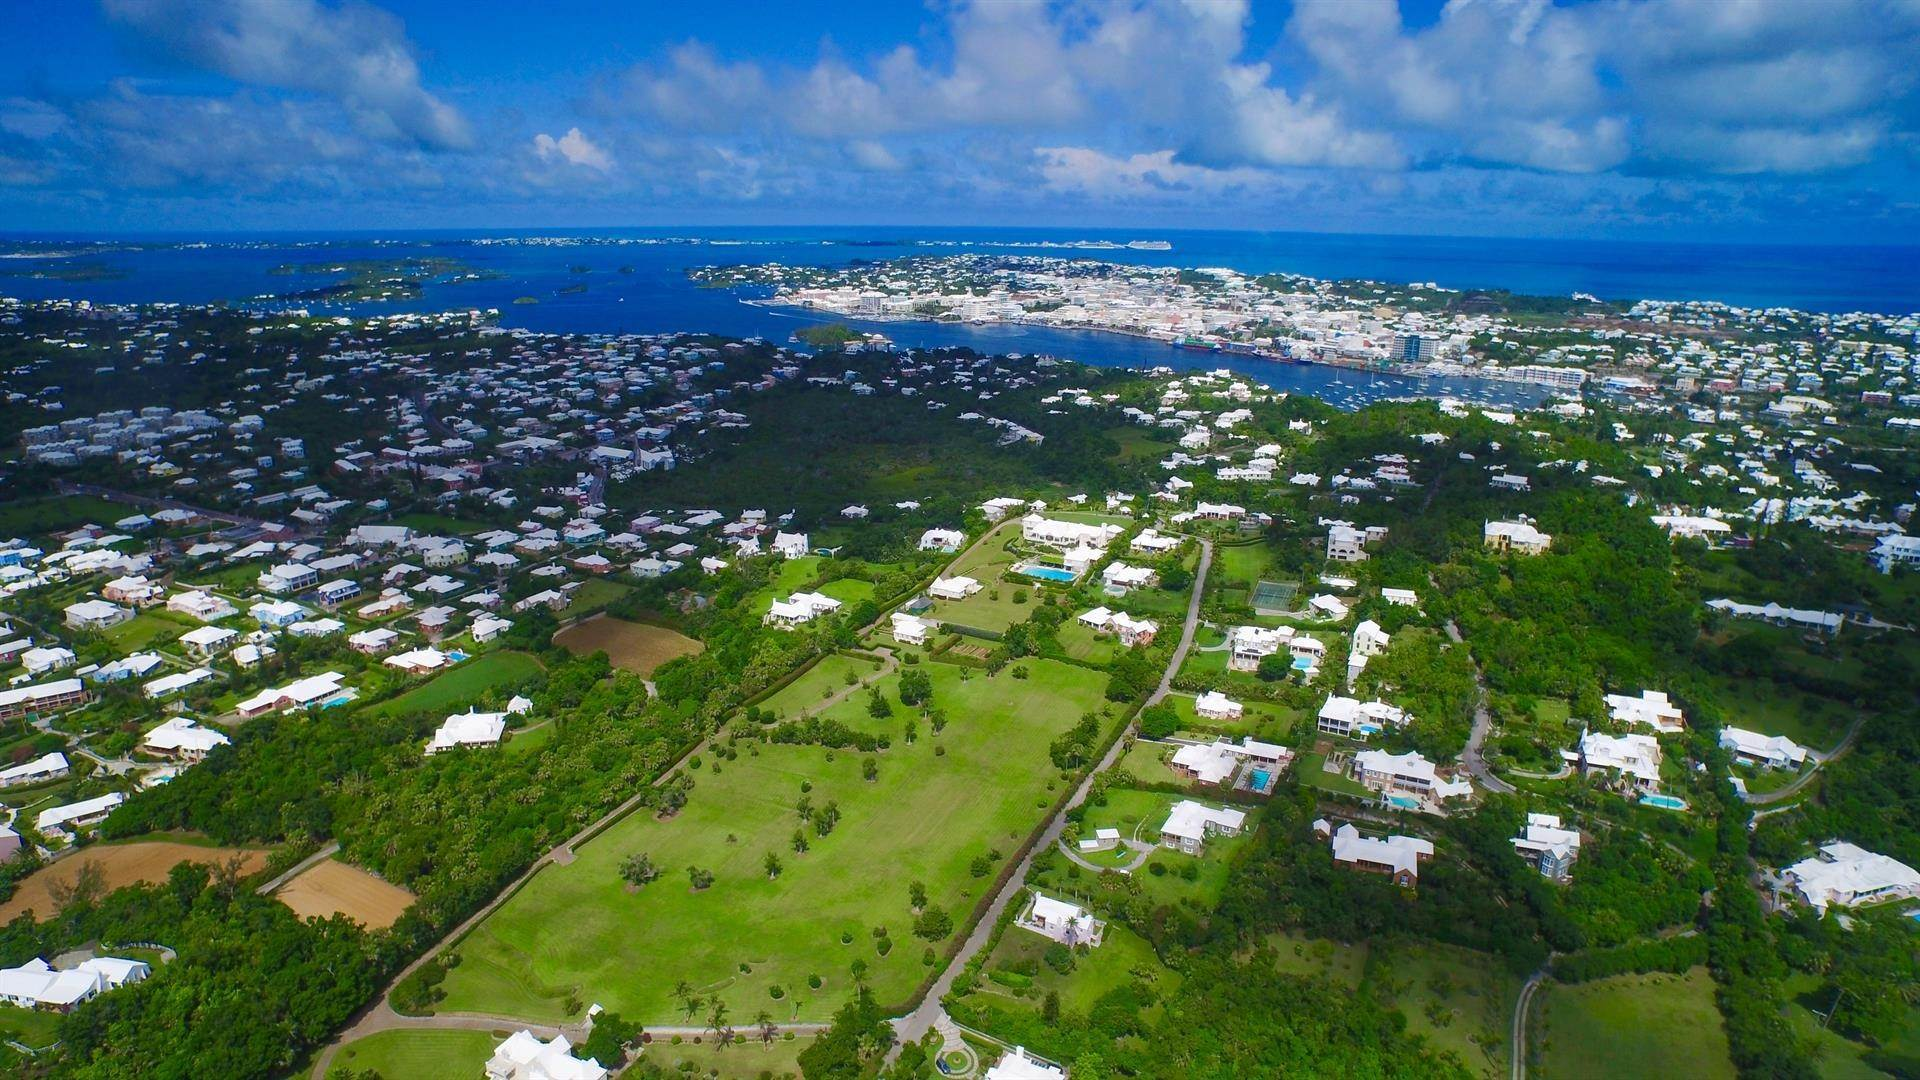 3. Aan het strand Property voor Verkoop op Chelston on Grape Bay Beach Chelston on Grape Bay Beach, 12 Grape Bay Drive,Bermuda – Sinclair Realty